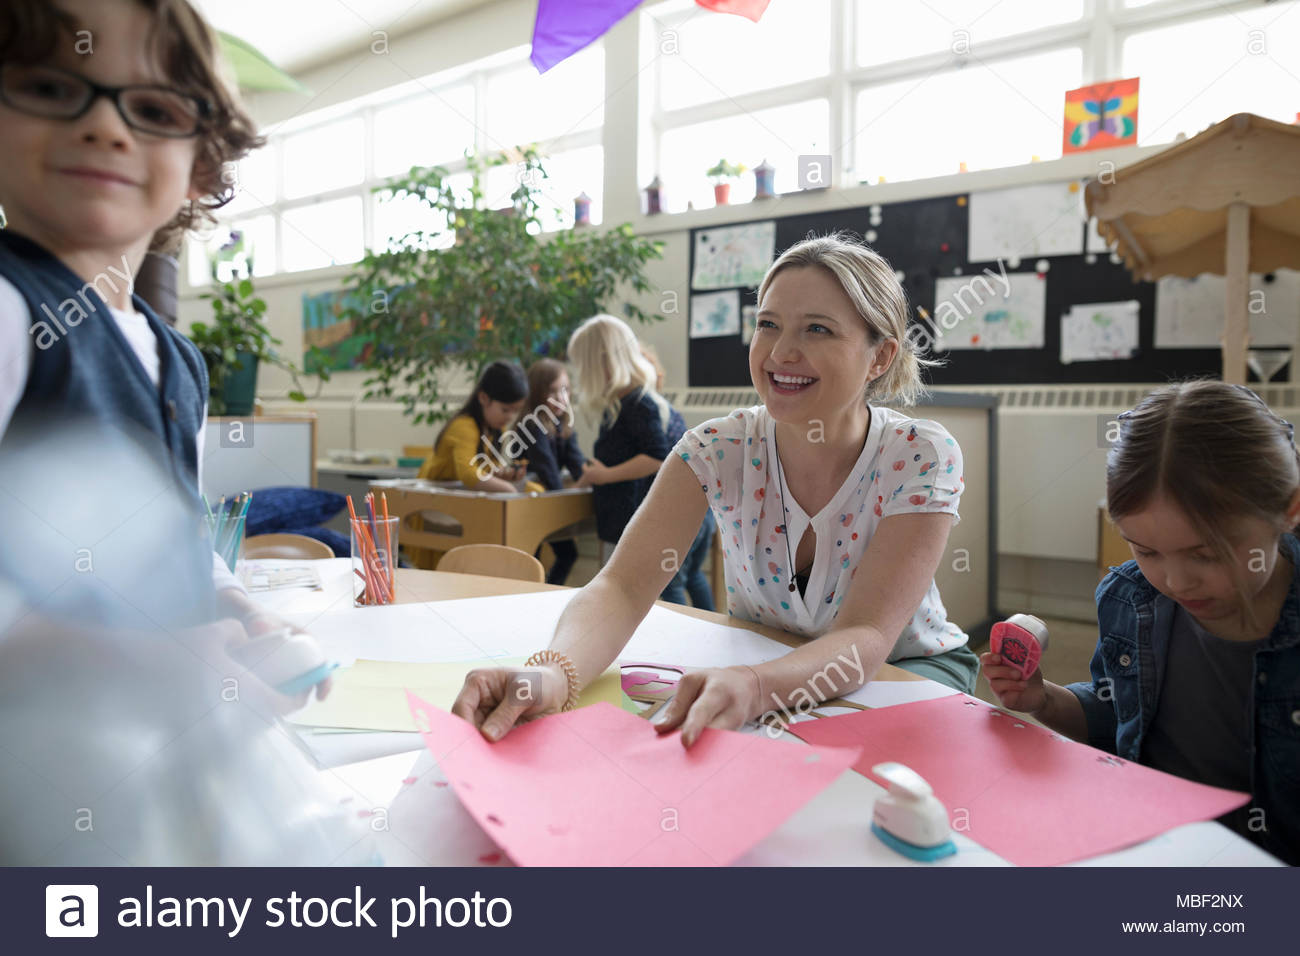 Preschool teacher and students making art and craft projects in classroom - Stock Image